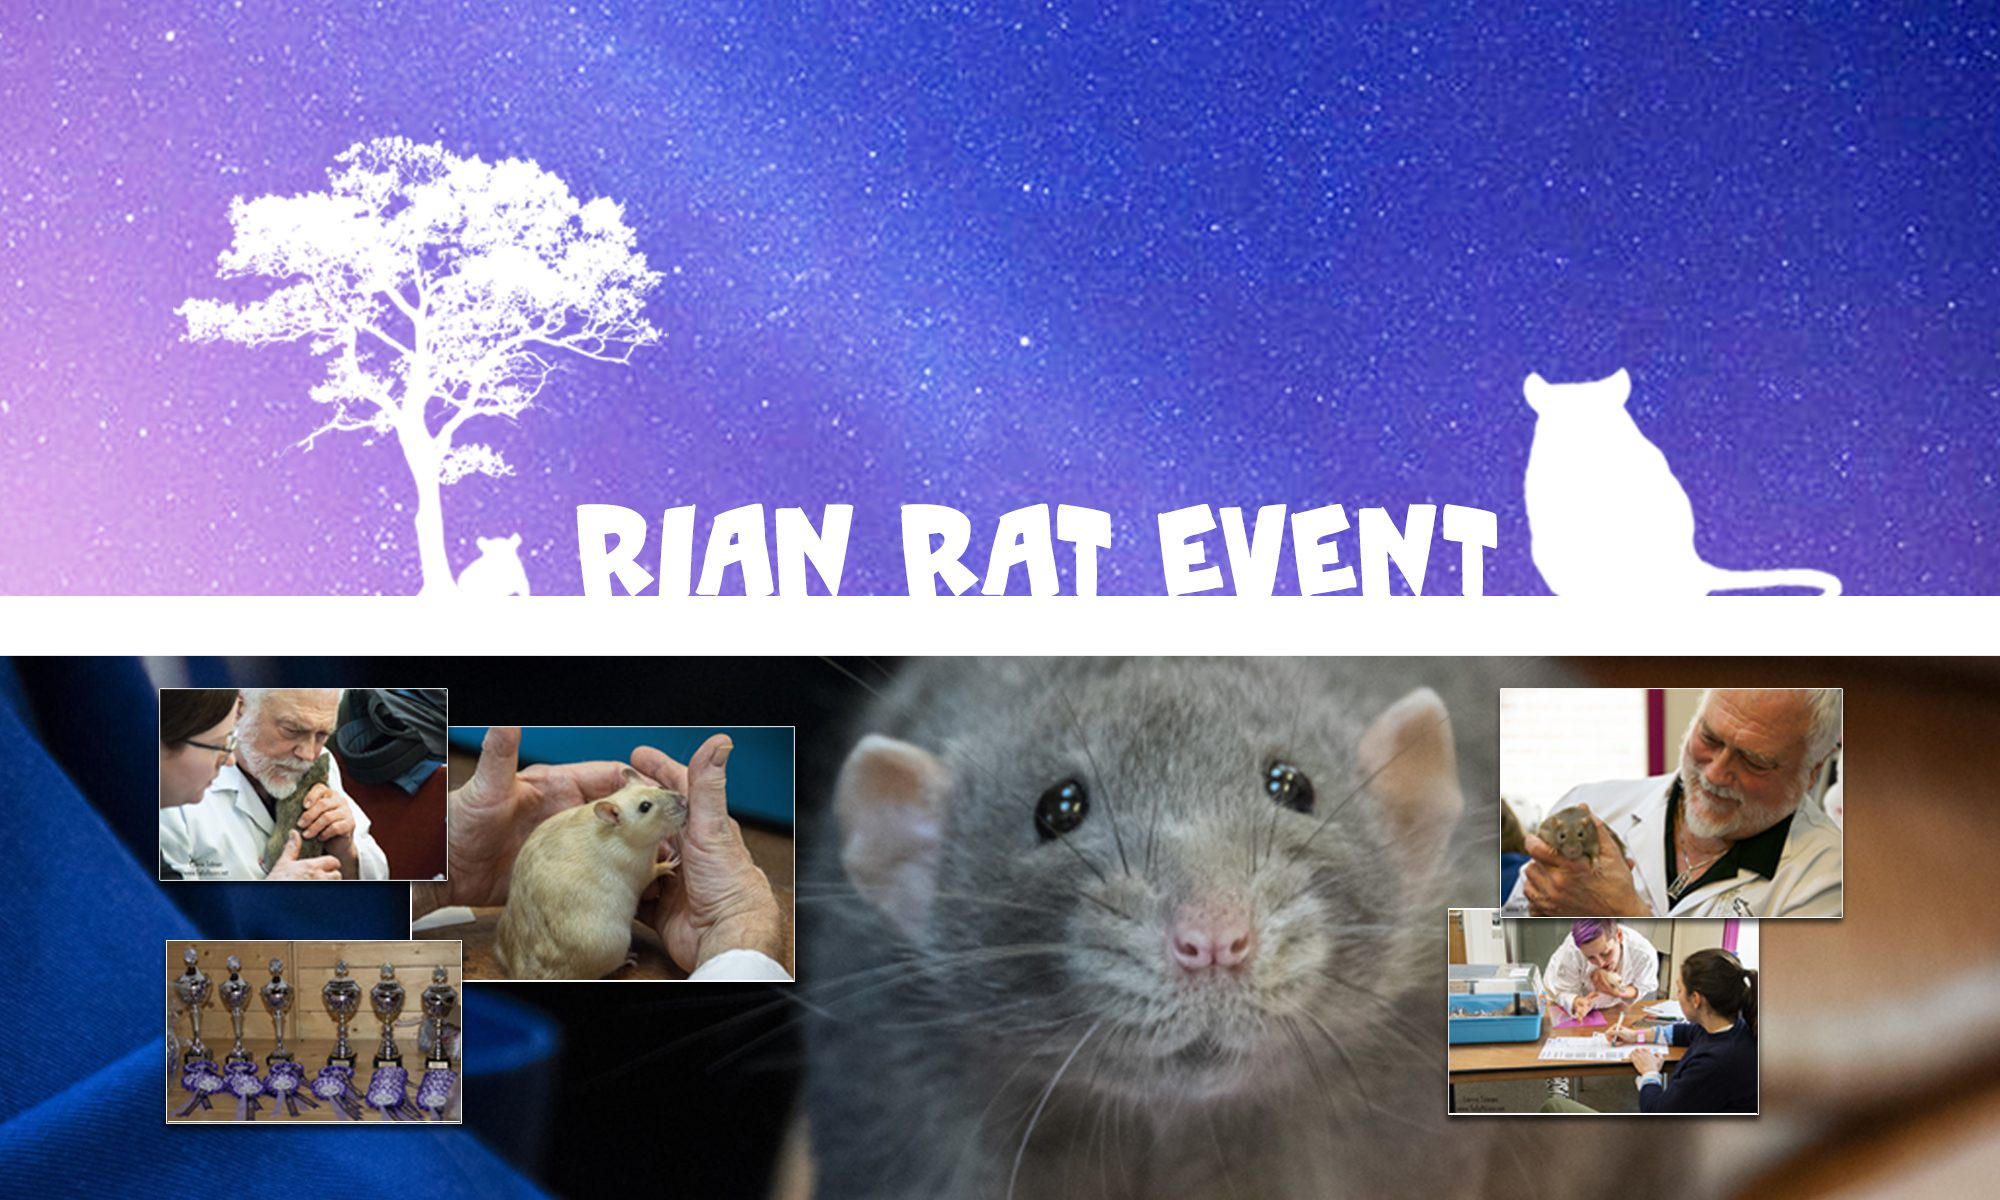 Rian Rat Event